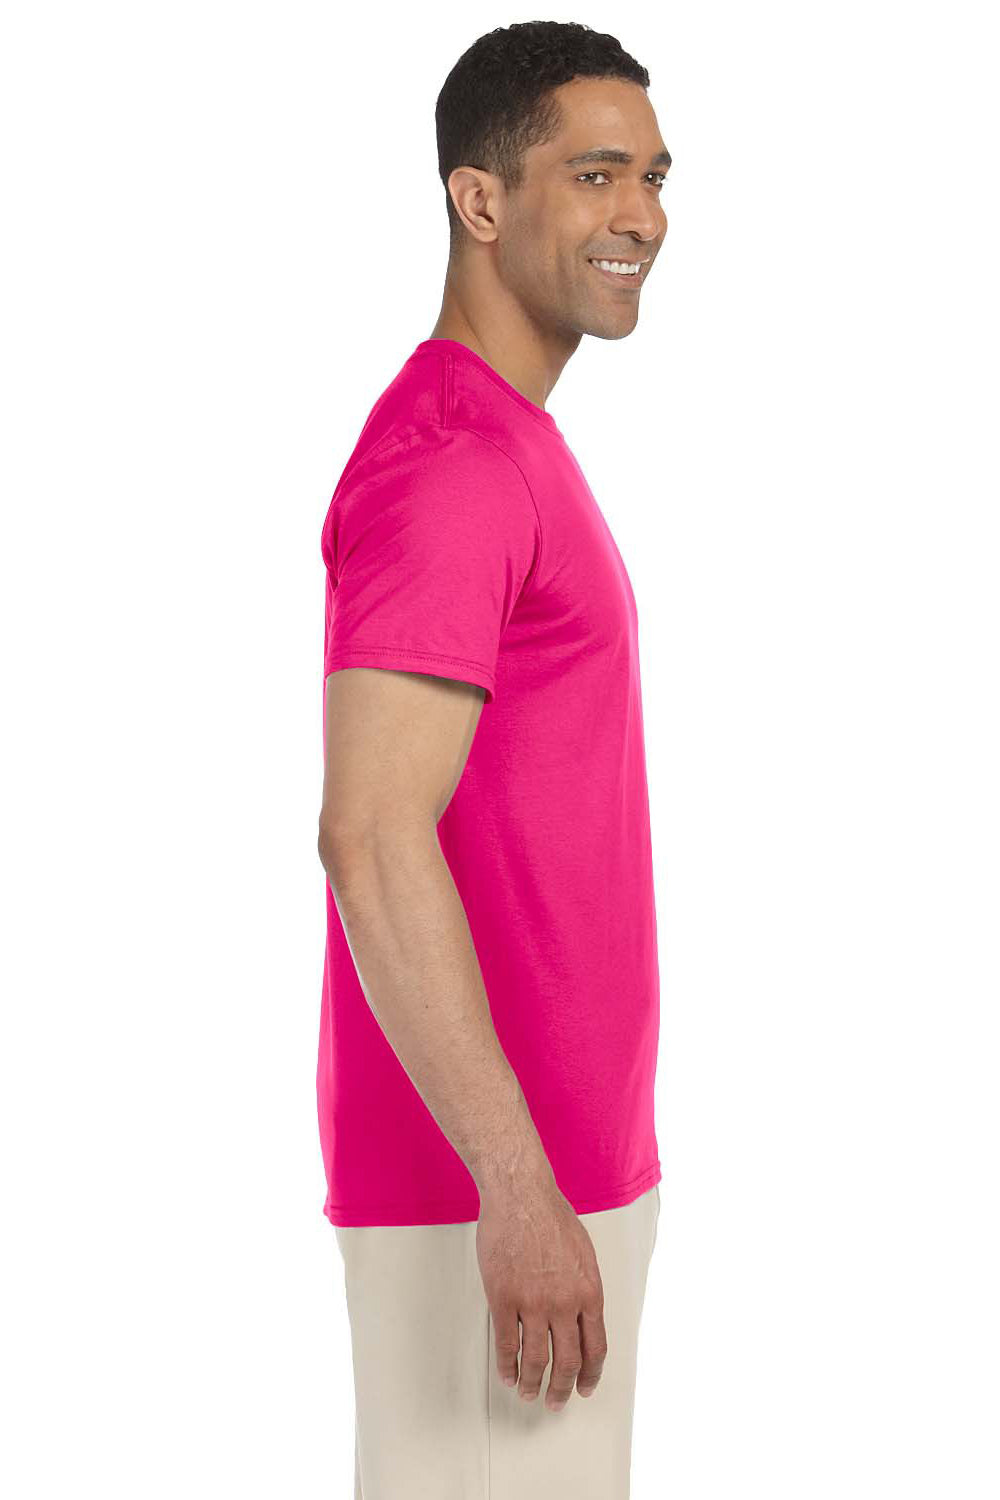 Gildan G640 Mens Softstyle Short Sleeve Crewneck T-Shirt Antique Heliconia Pink Side